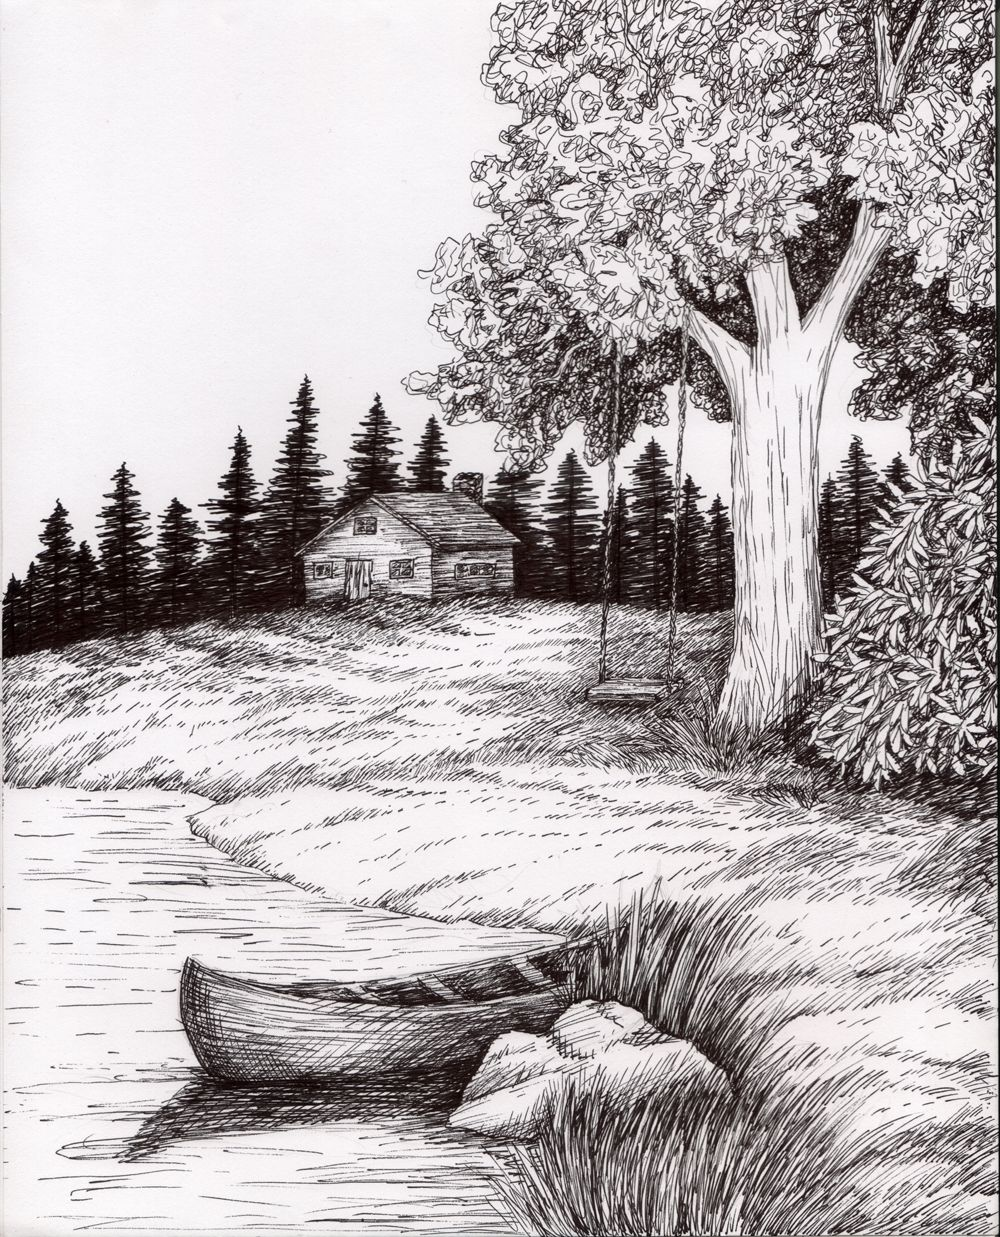 Pen and ink wash landscape pen and ink landscape drawings images frompo 1